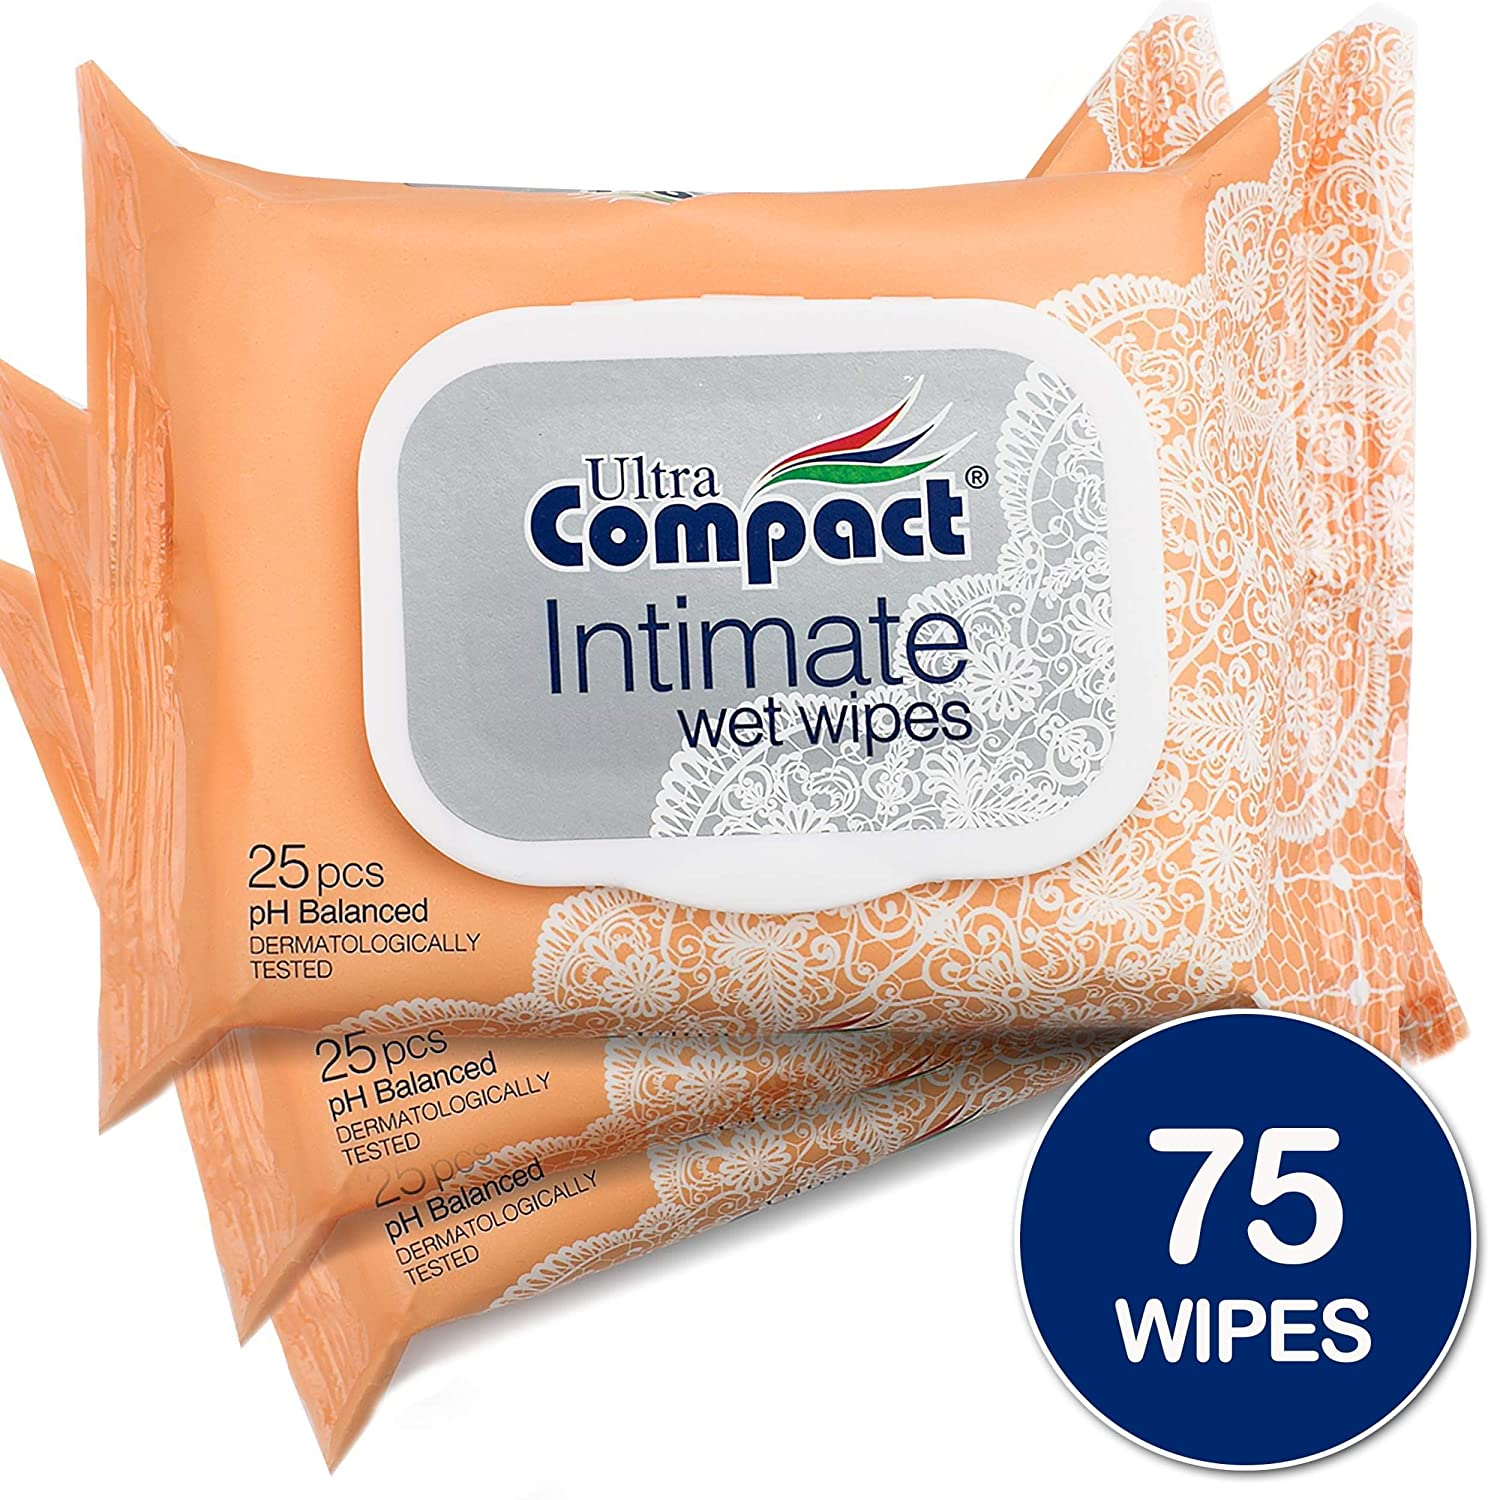 Ultra Compact Body Wipes for Women - Health and Beauty Feminine Wipes - pH-Balanced Cleansing Cloths - Shea Butter Fragrance - 25 Cleansing Wipes per Pack - Re-Sealable 3 Packs